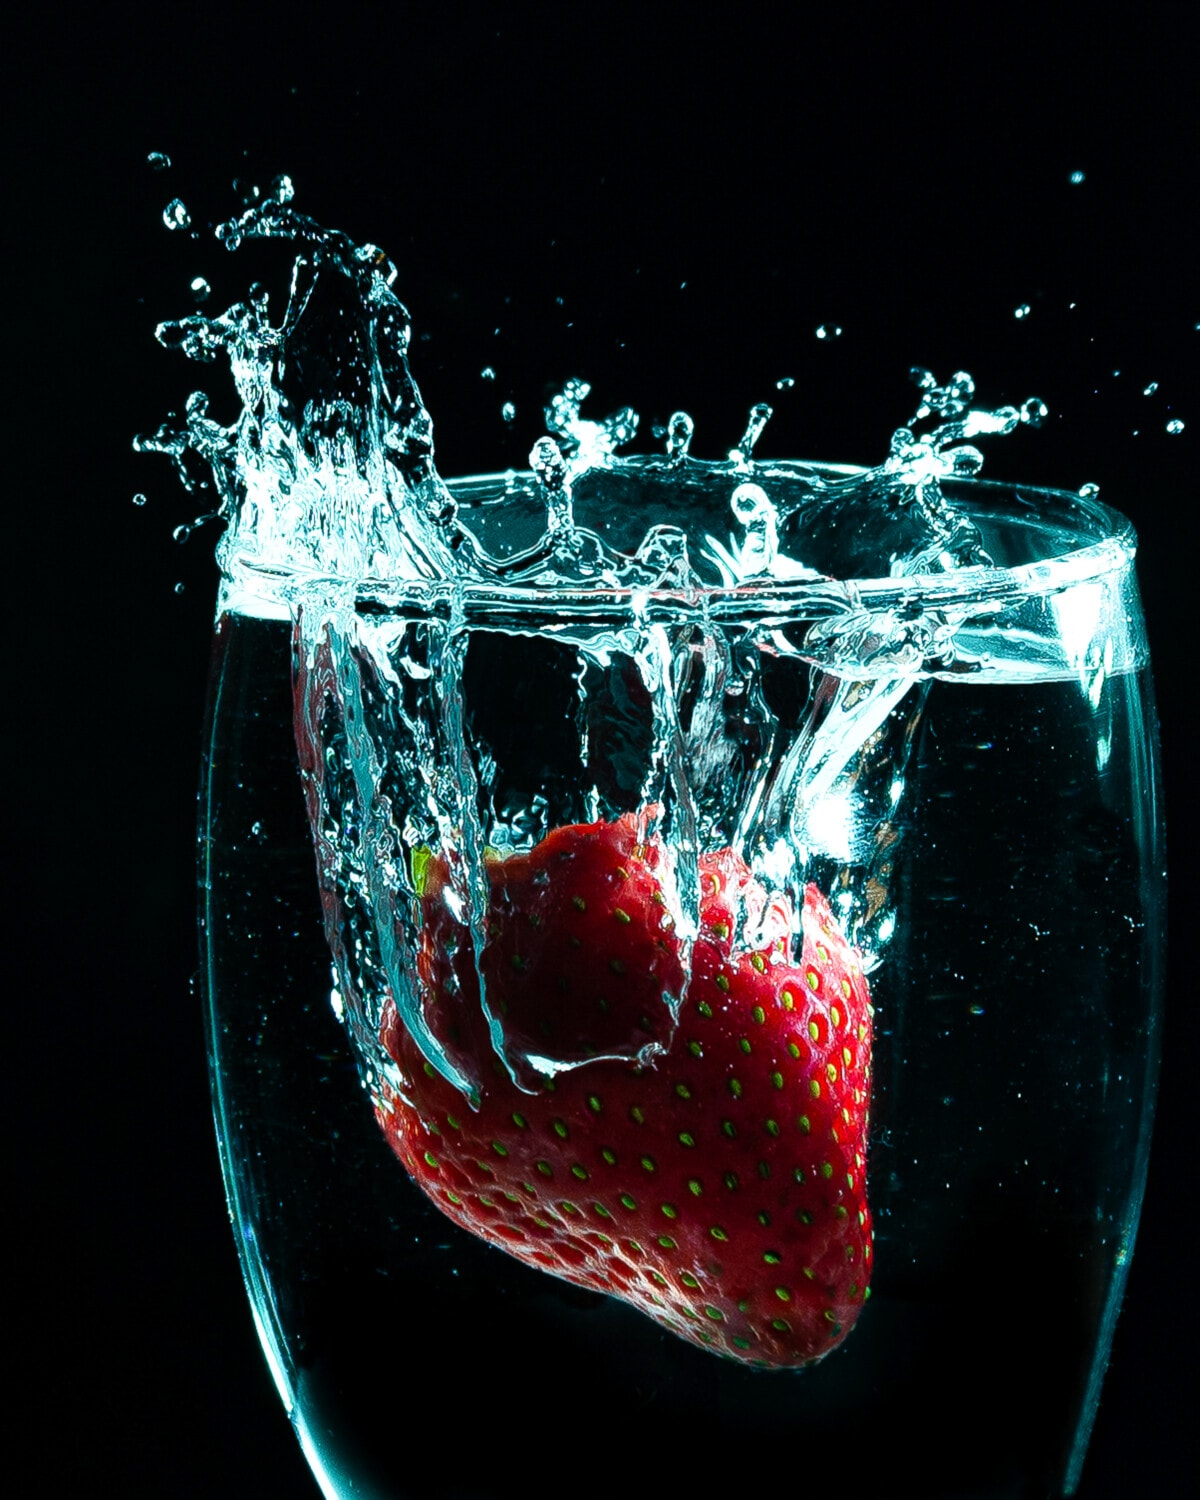 waterdrops, drinking water, glass, strawberry, photography, photo studio, close-up, liquid, splash, bubble